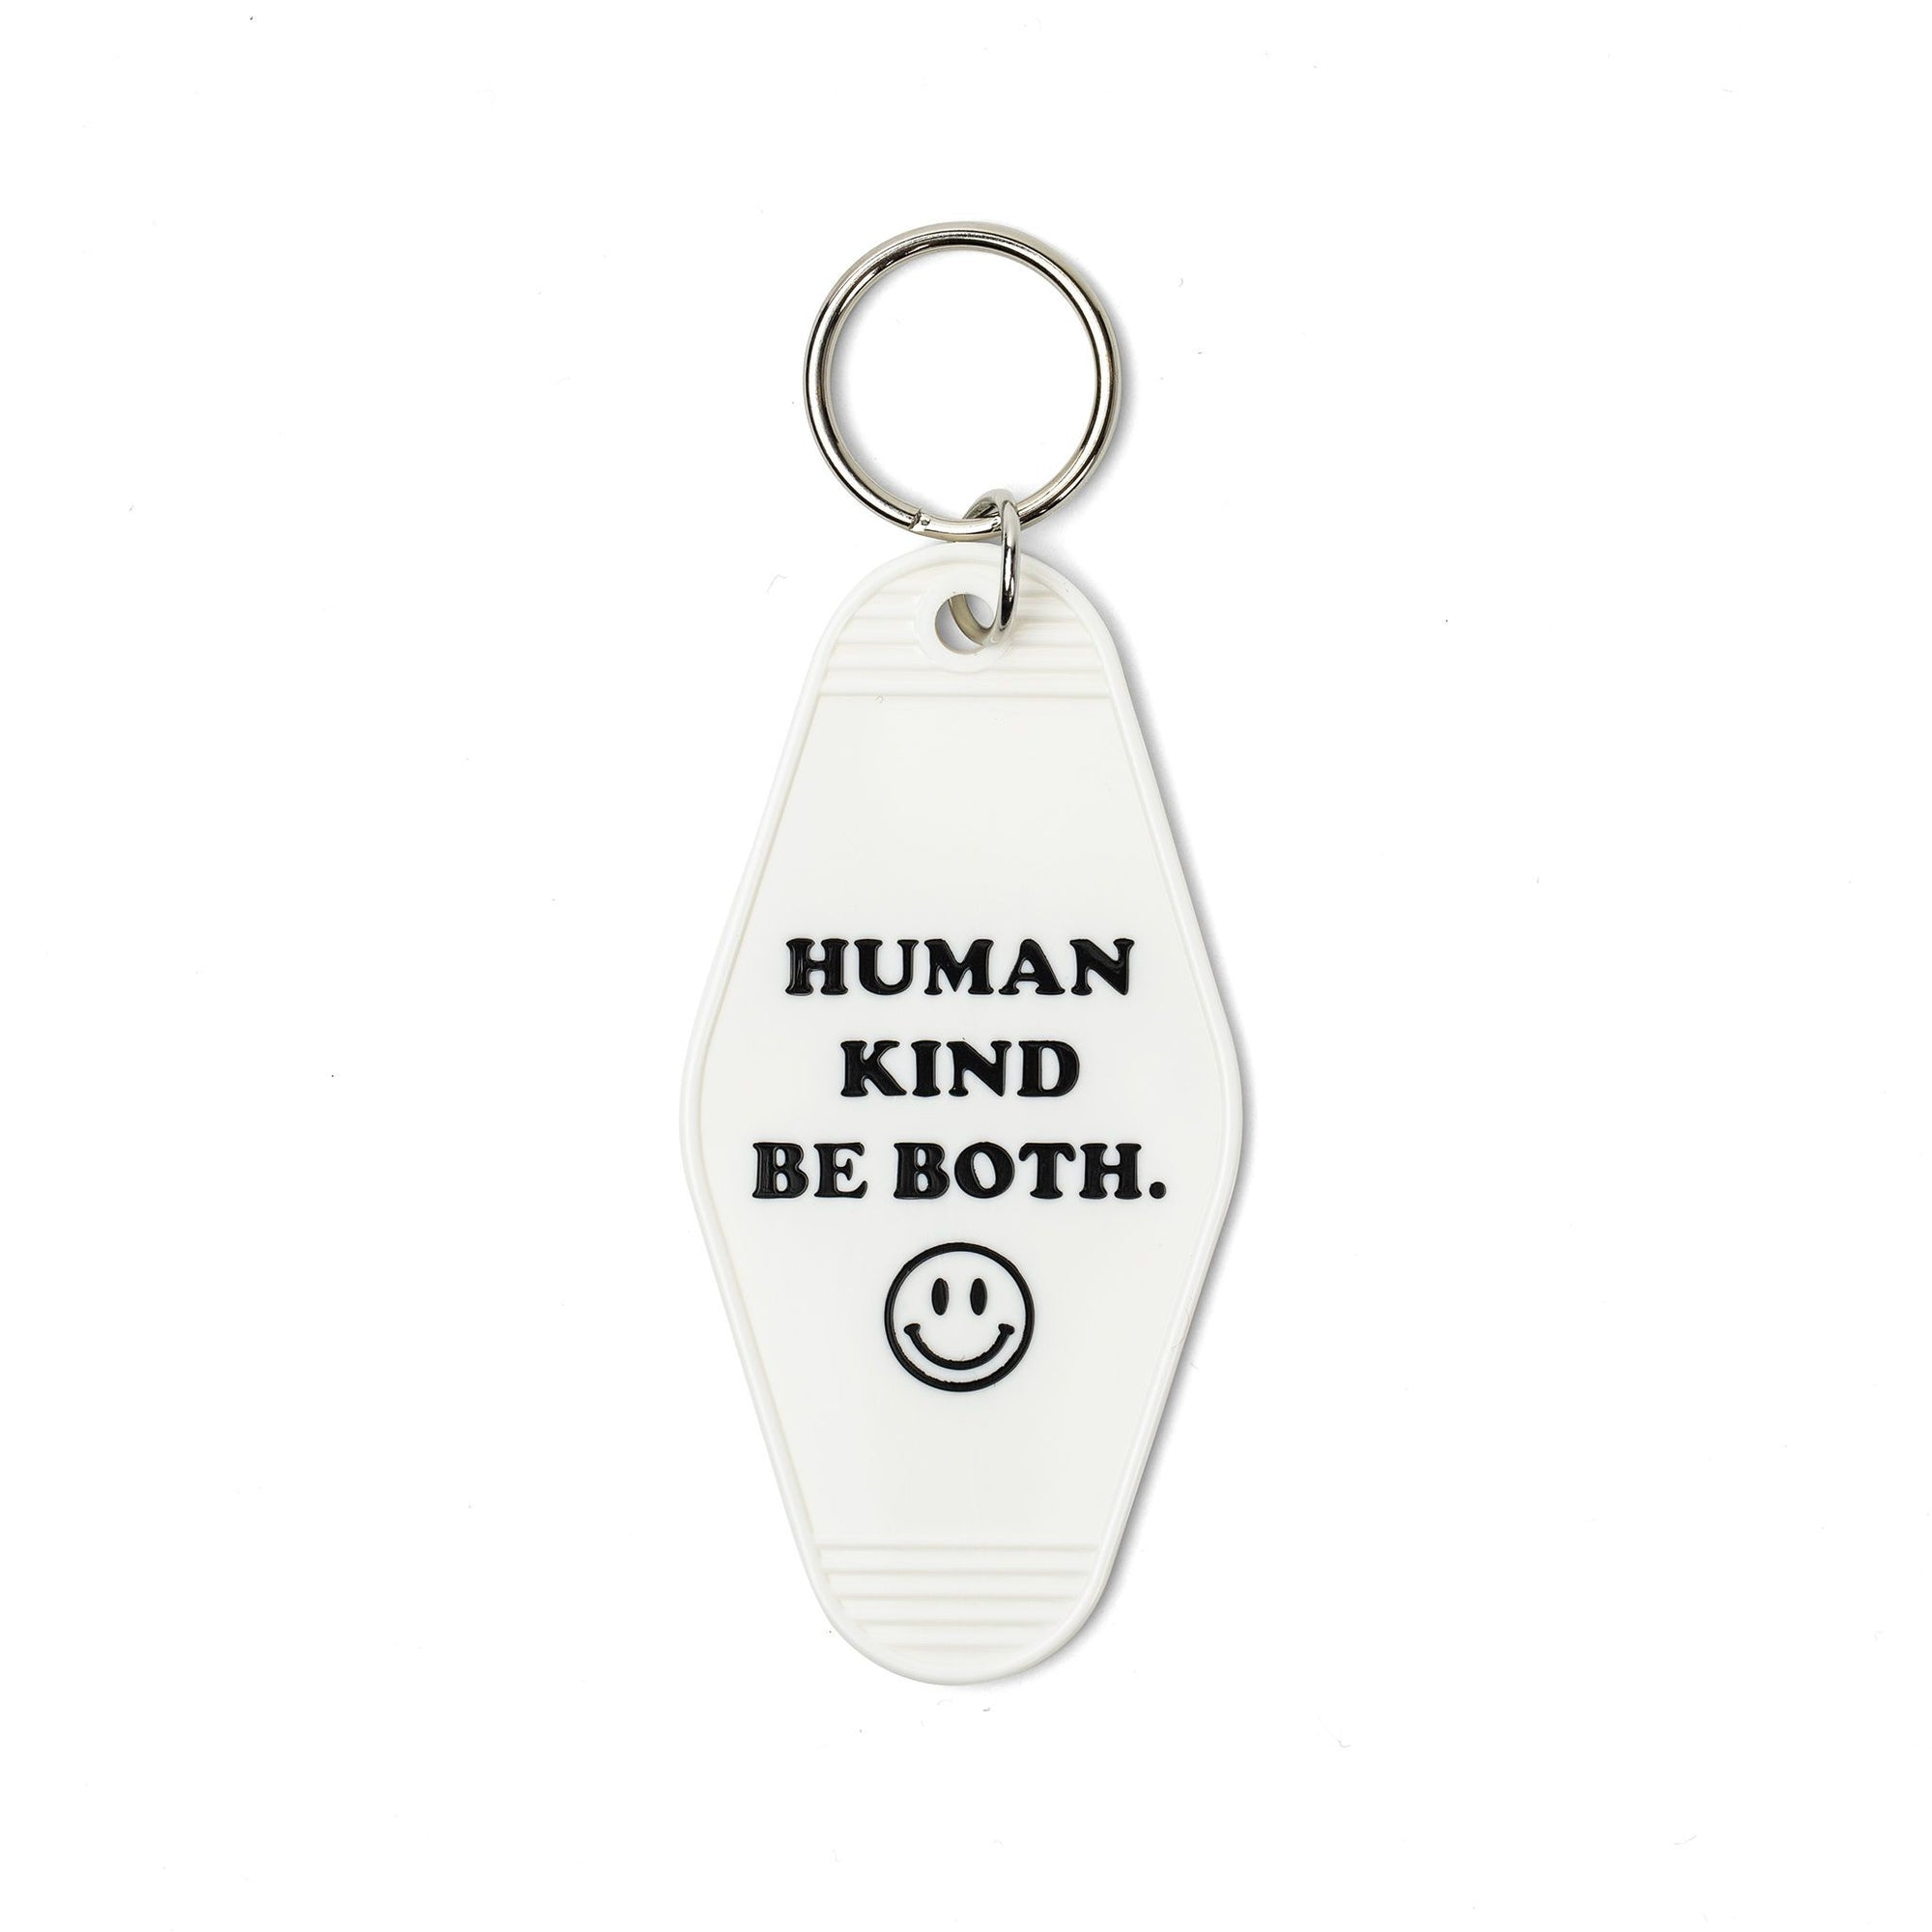 Human Kind Key Tag